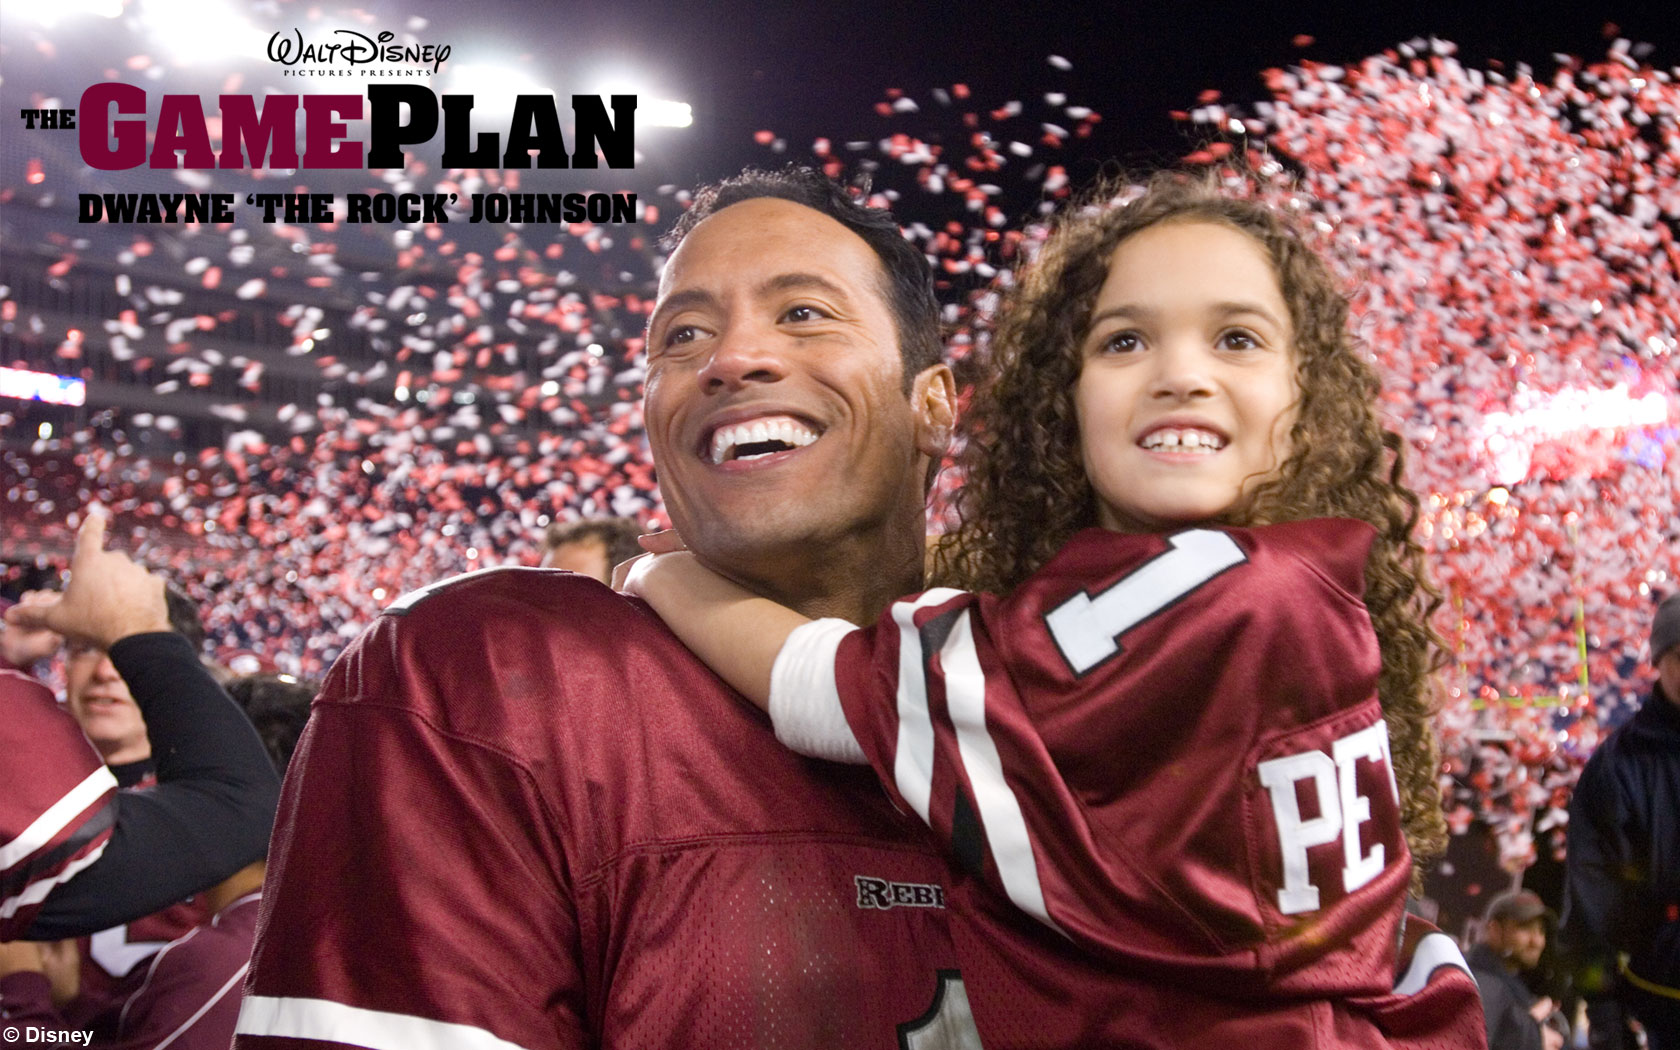 The Game Plan - Wallpaper - large